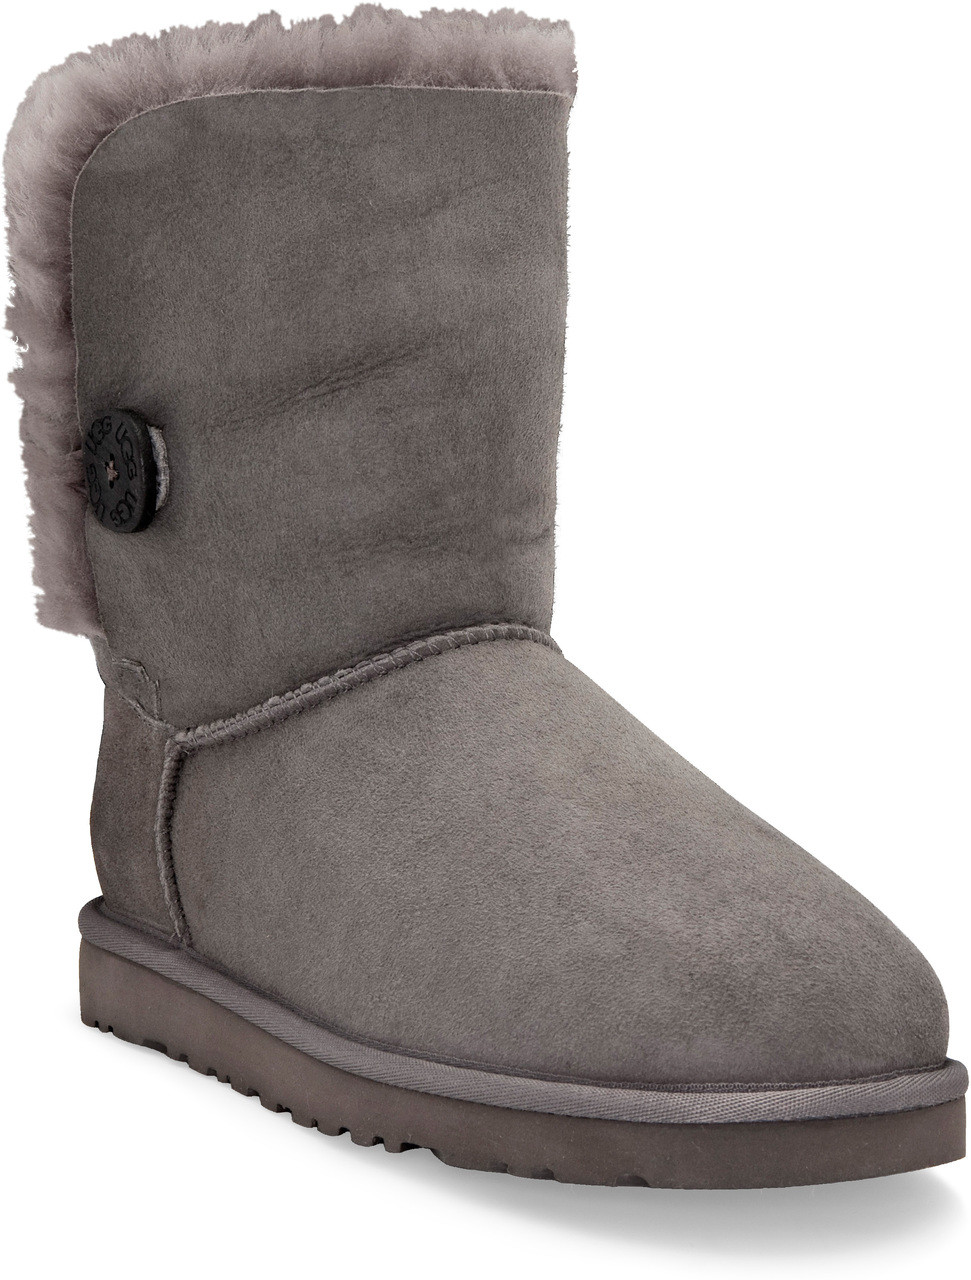 ... Casual Boots; UGG Australia Women's Bailey Button. Aster · Aster ·  Black · Chestnut · Chocolate · Dry Leaf · Grey ...